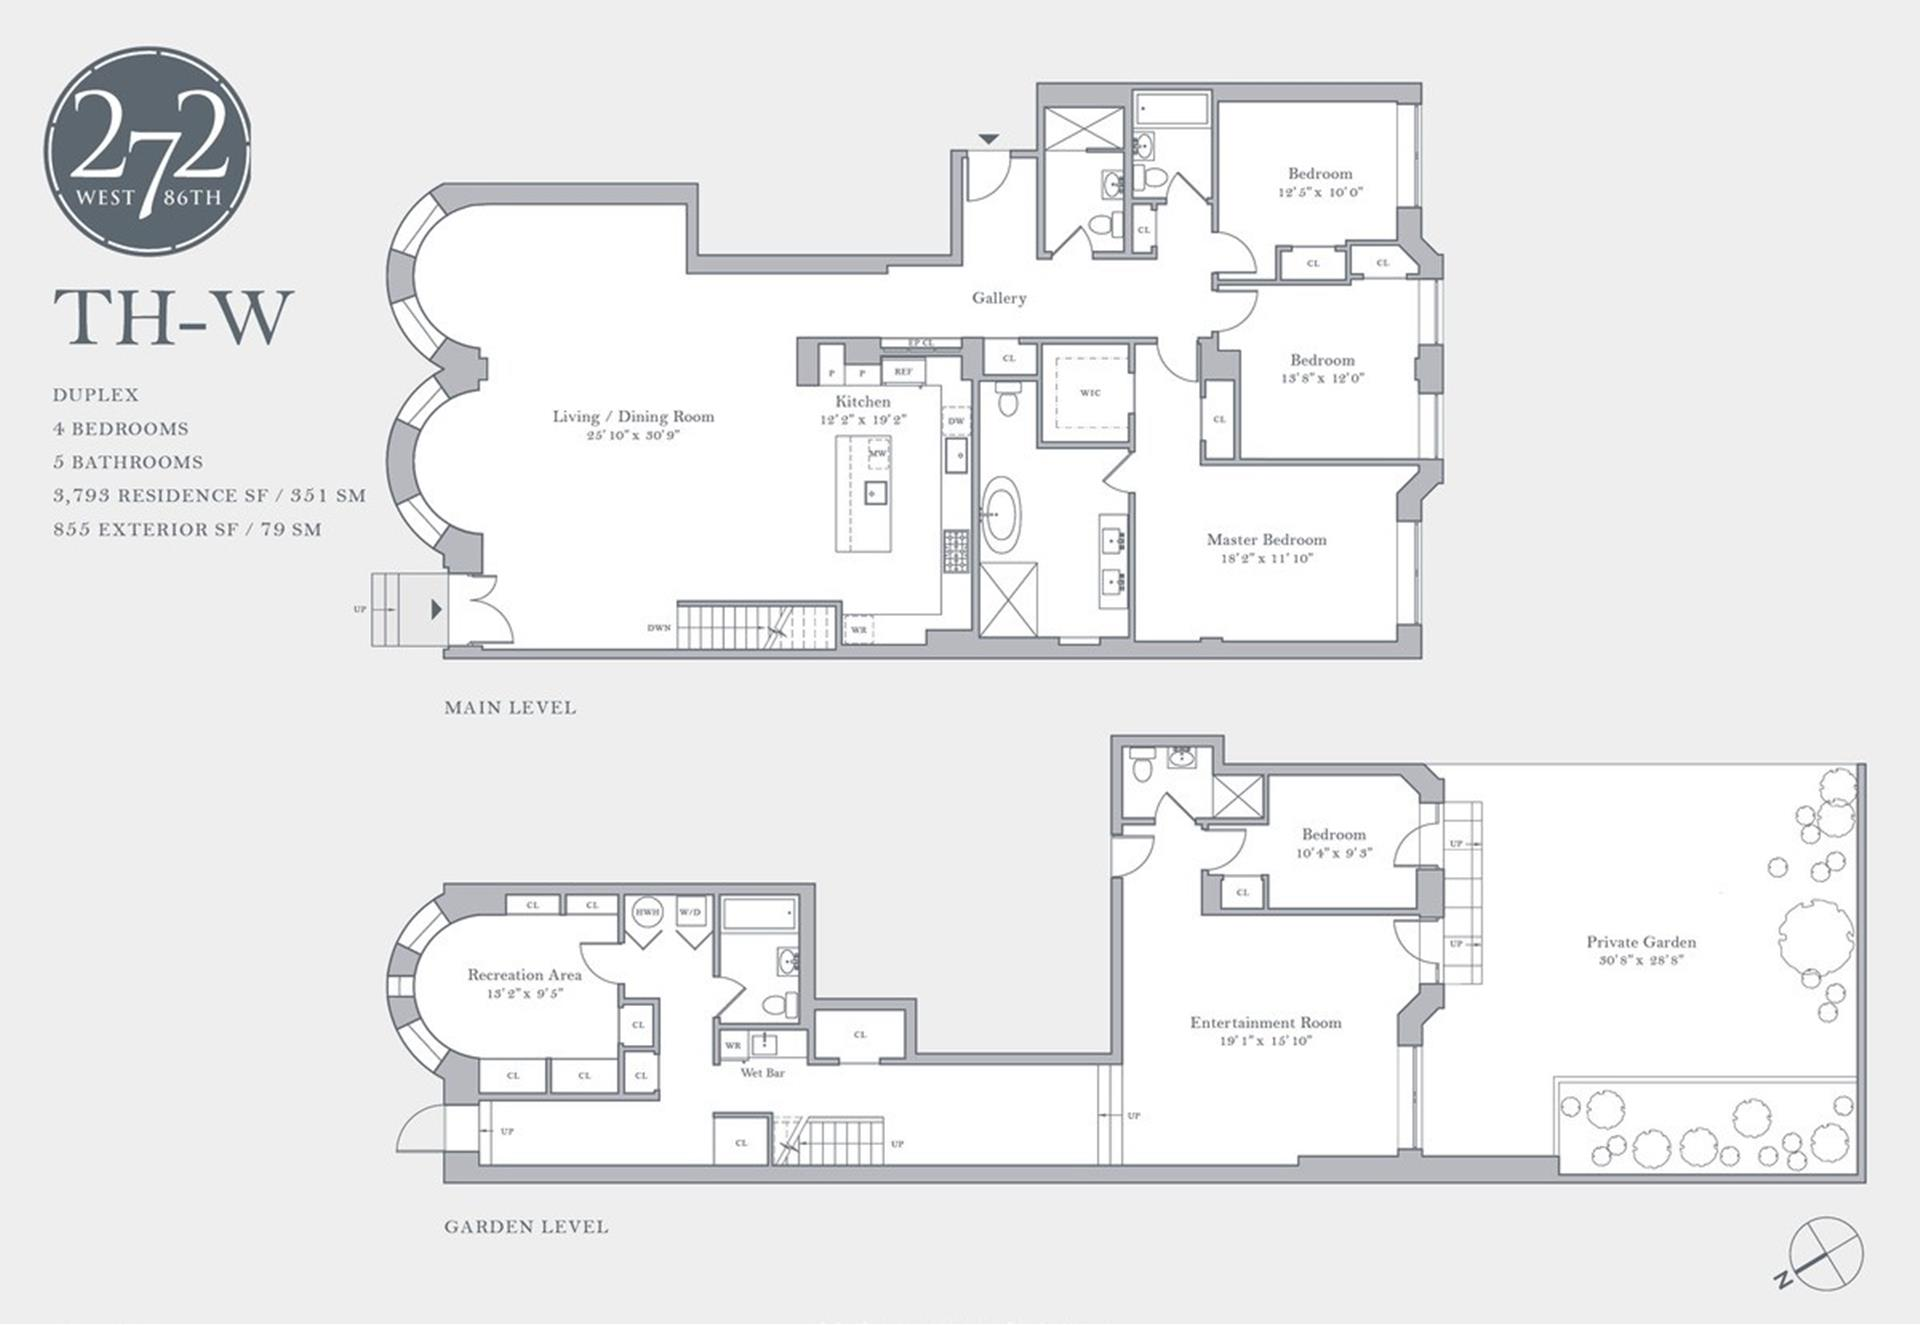 Floor plan of 272 West 86th Street, THW - Upper West Side, New York